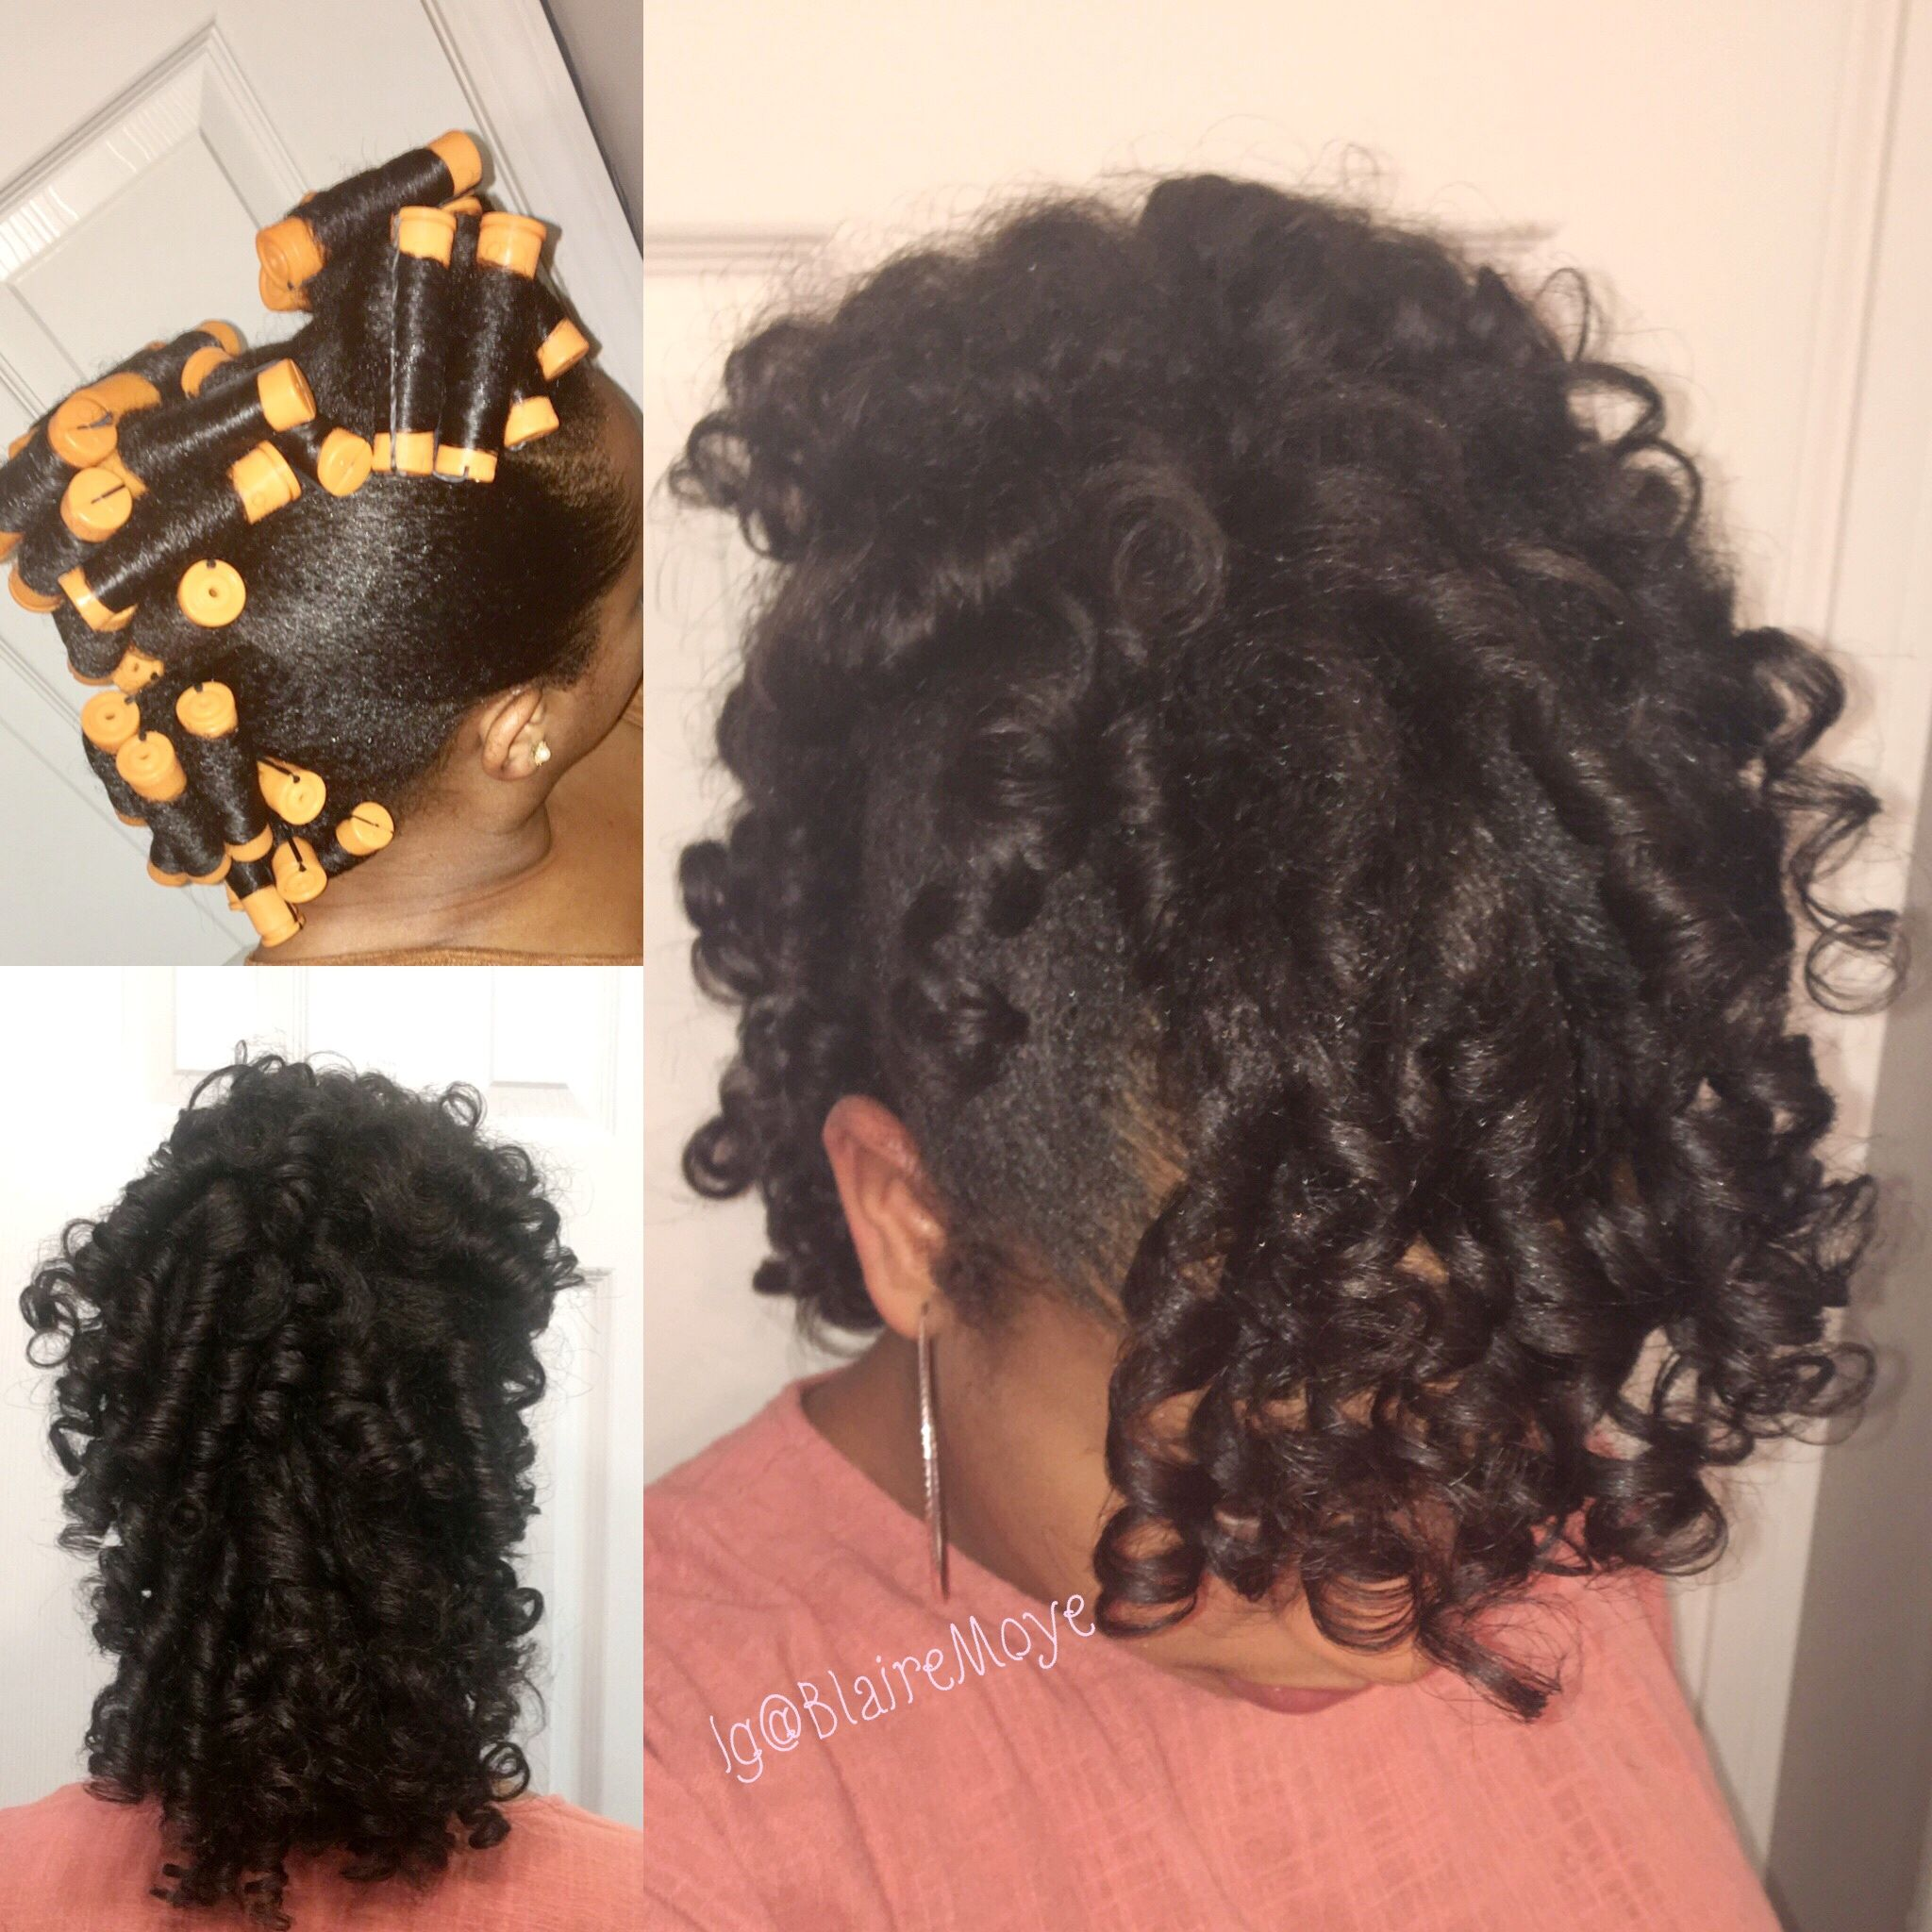 Natural Hair Style Frohawk Using Perm Rods And The Mane Choice